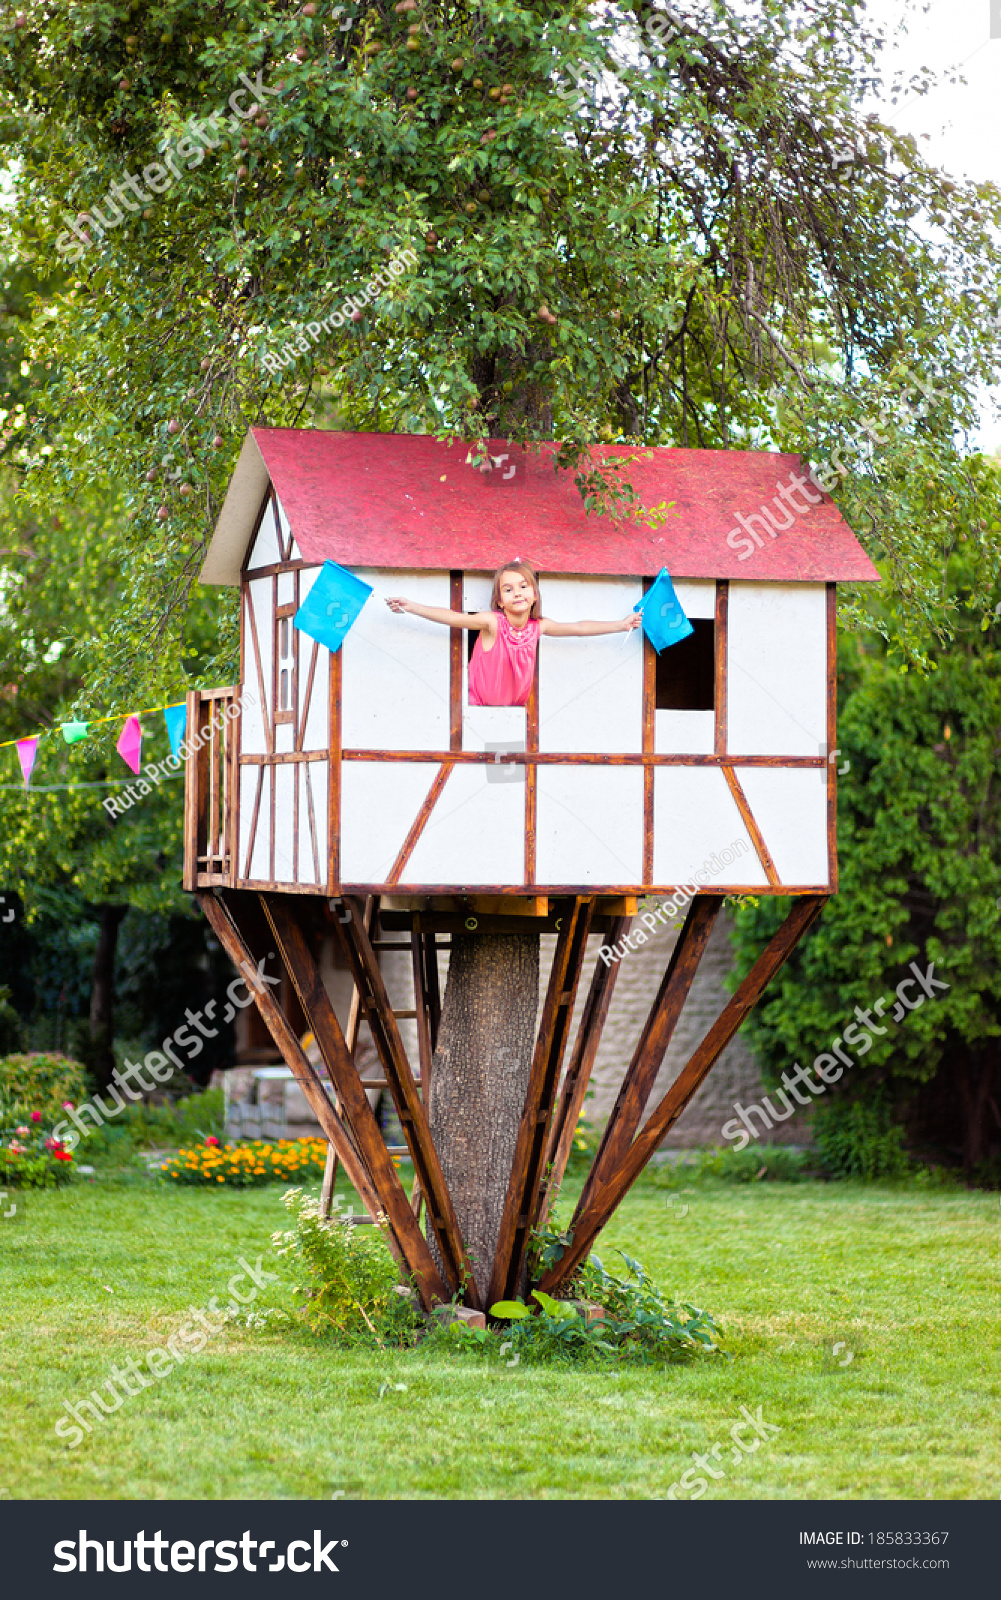 Cute small tree house for kids on backyard girl inside for Cute houses inside